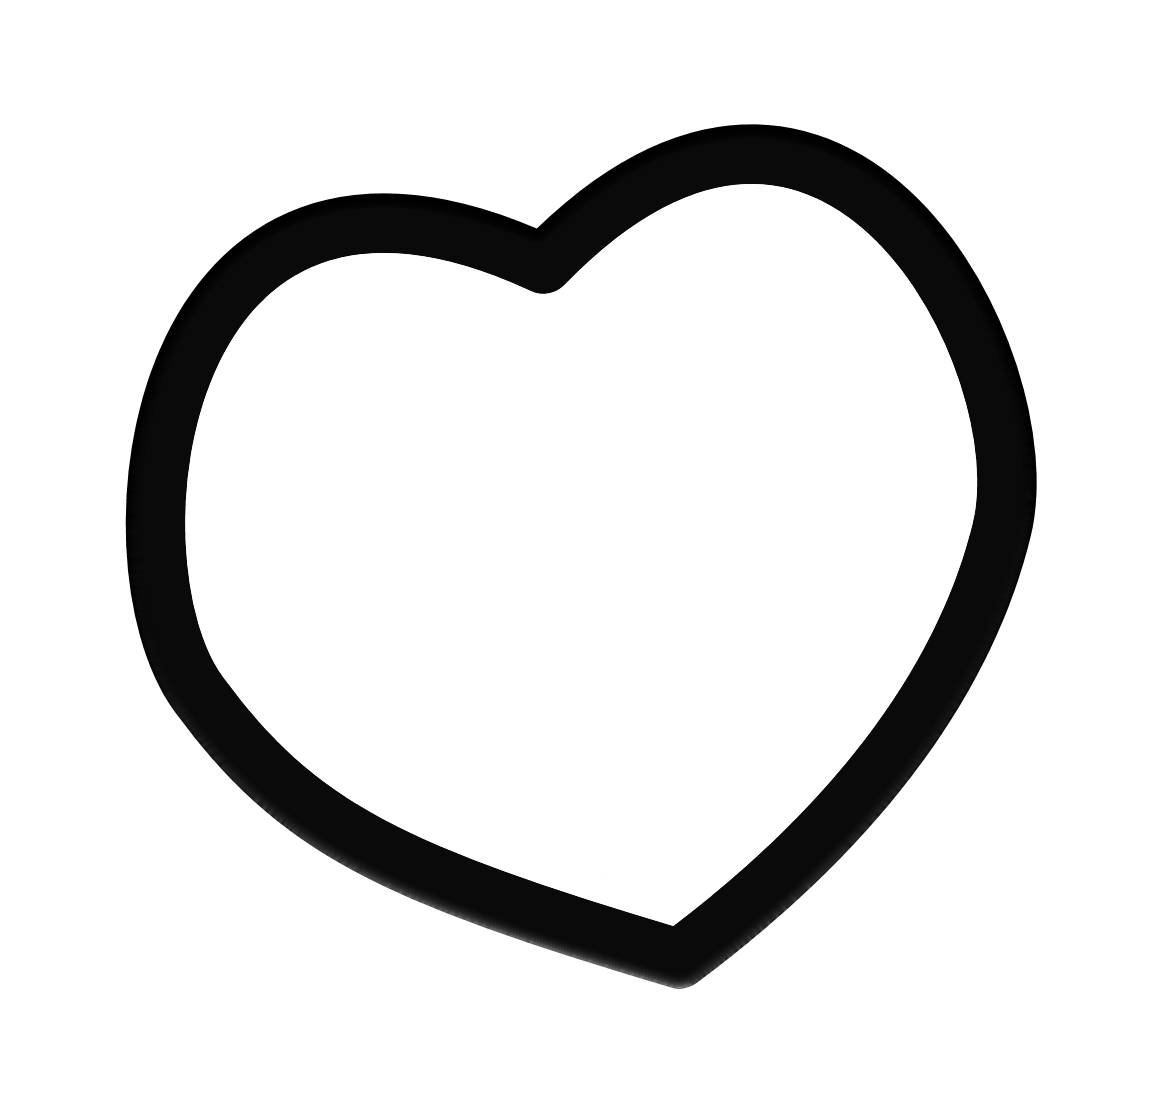 Triple heart clipart library Heart Frame Clip Art Black And White | Clipart Panda - Free Clipart ... library